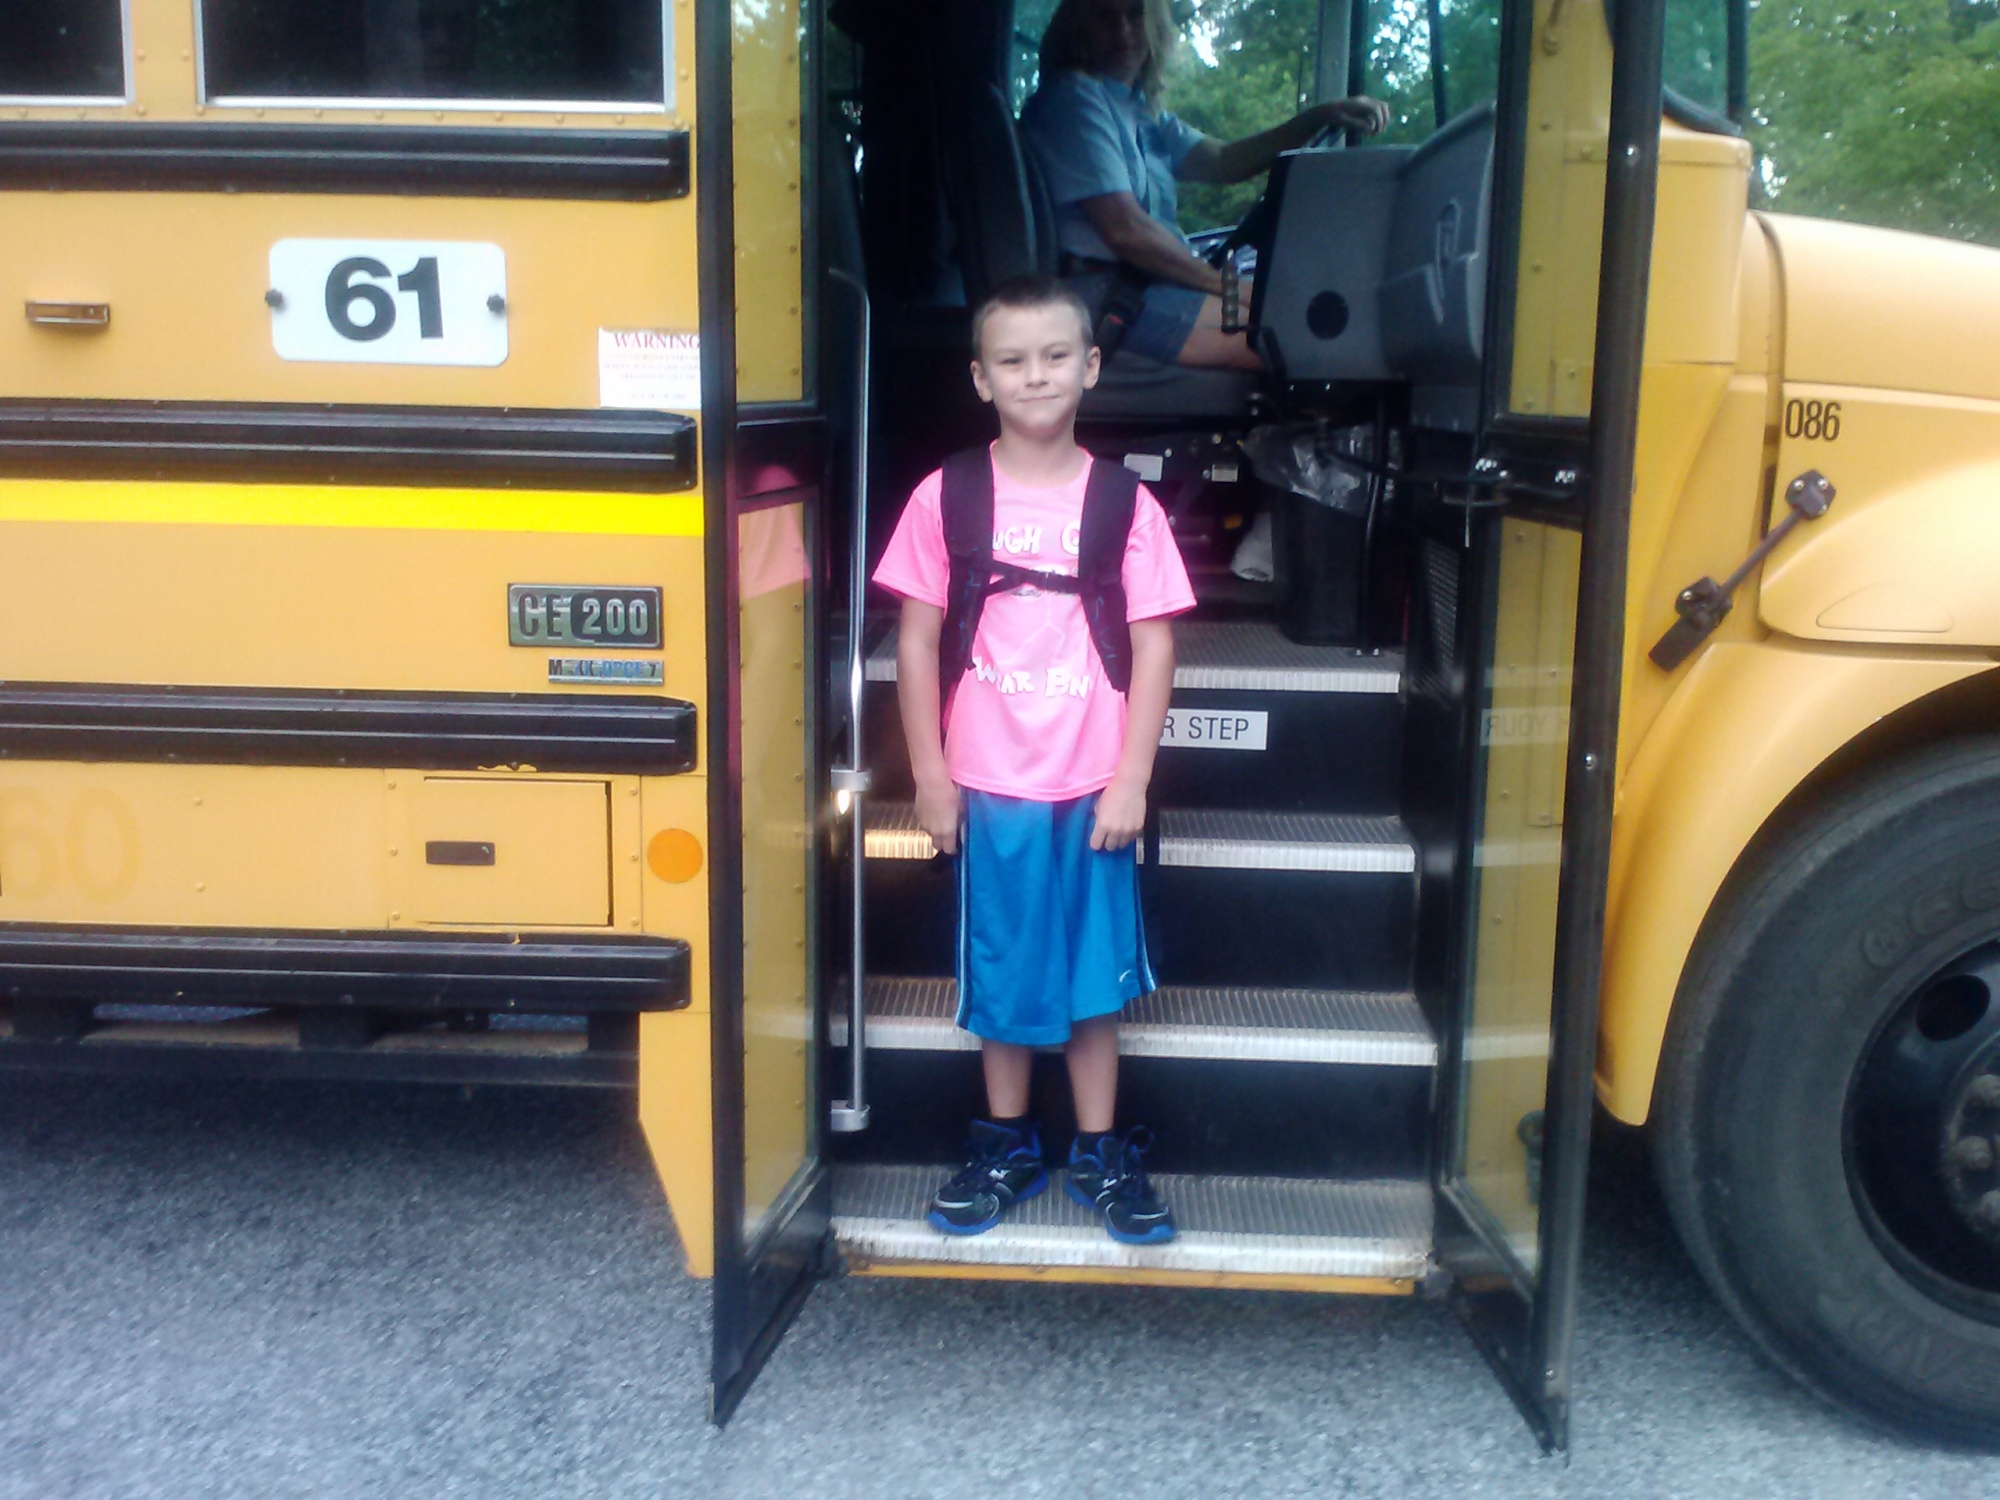 "Reaven Caillouet, 7 years old. First day at Jones Elementary in Rogers, second grade. He picked out a pink shirt saying ""Tough Guys Wear Pink"", and was so excited to go back to his teachers and friends. We live near Horseshoe bend area on Beaver Lake."